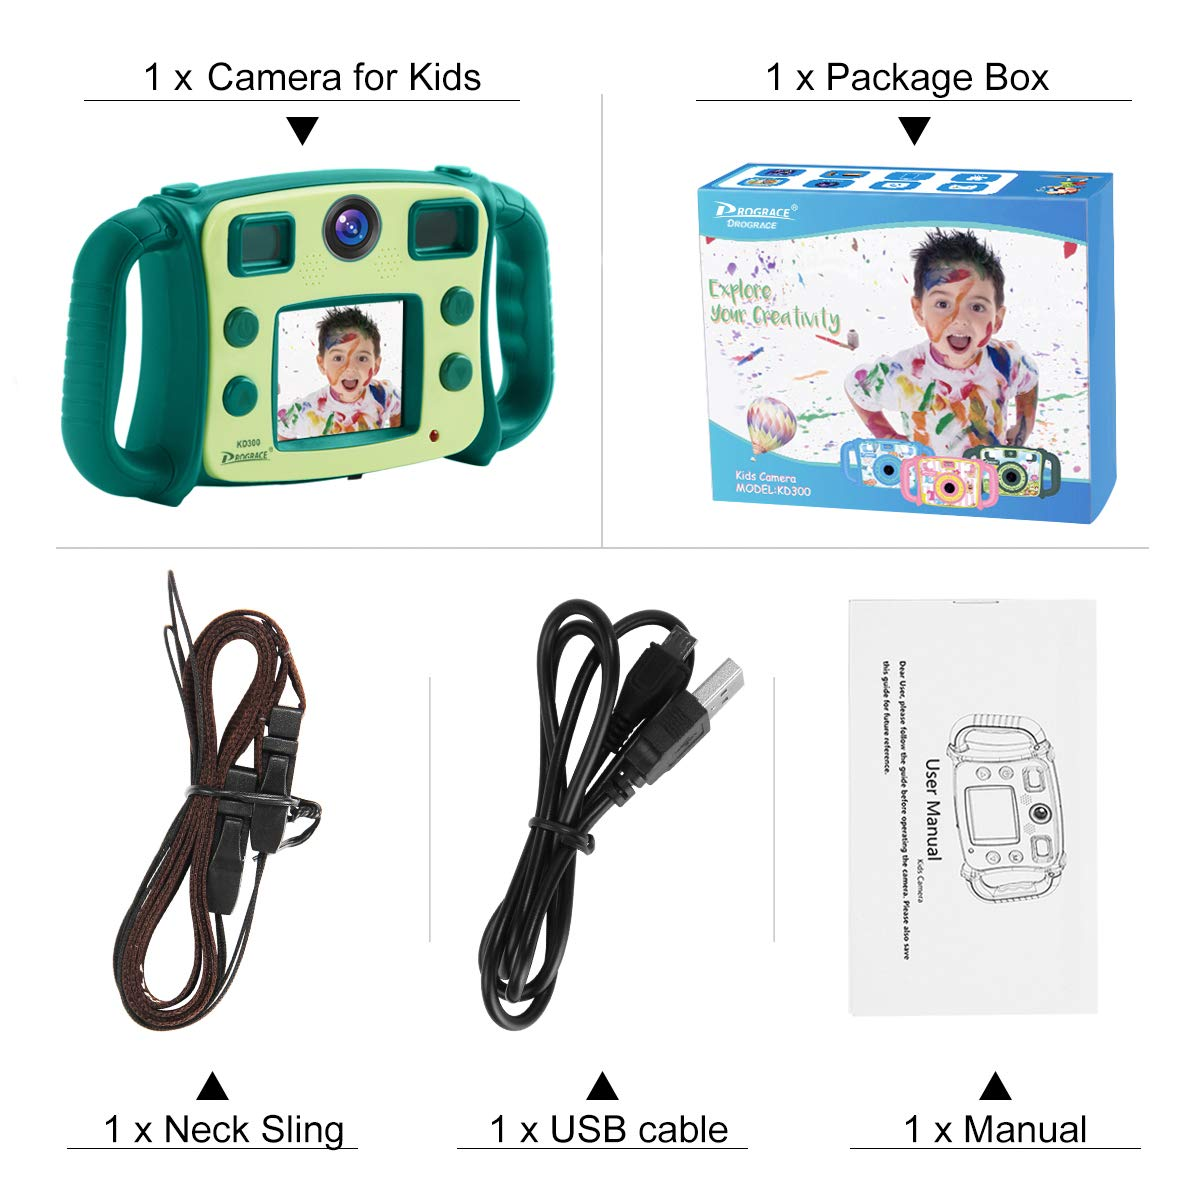 Prograce Kids Camera Dual Selfie Camera 1080P HD Video Recorder Digital Action Camera Camcorder for Boys Girls Gifts 2.0'' LCD Screen with 4X Digital Zoom and Funny Game(Green) by Prograce (Image #7)